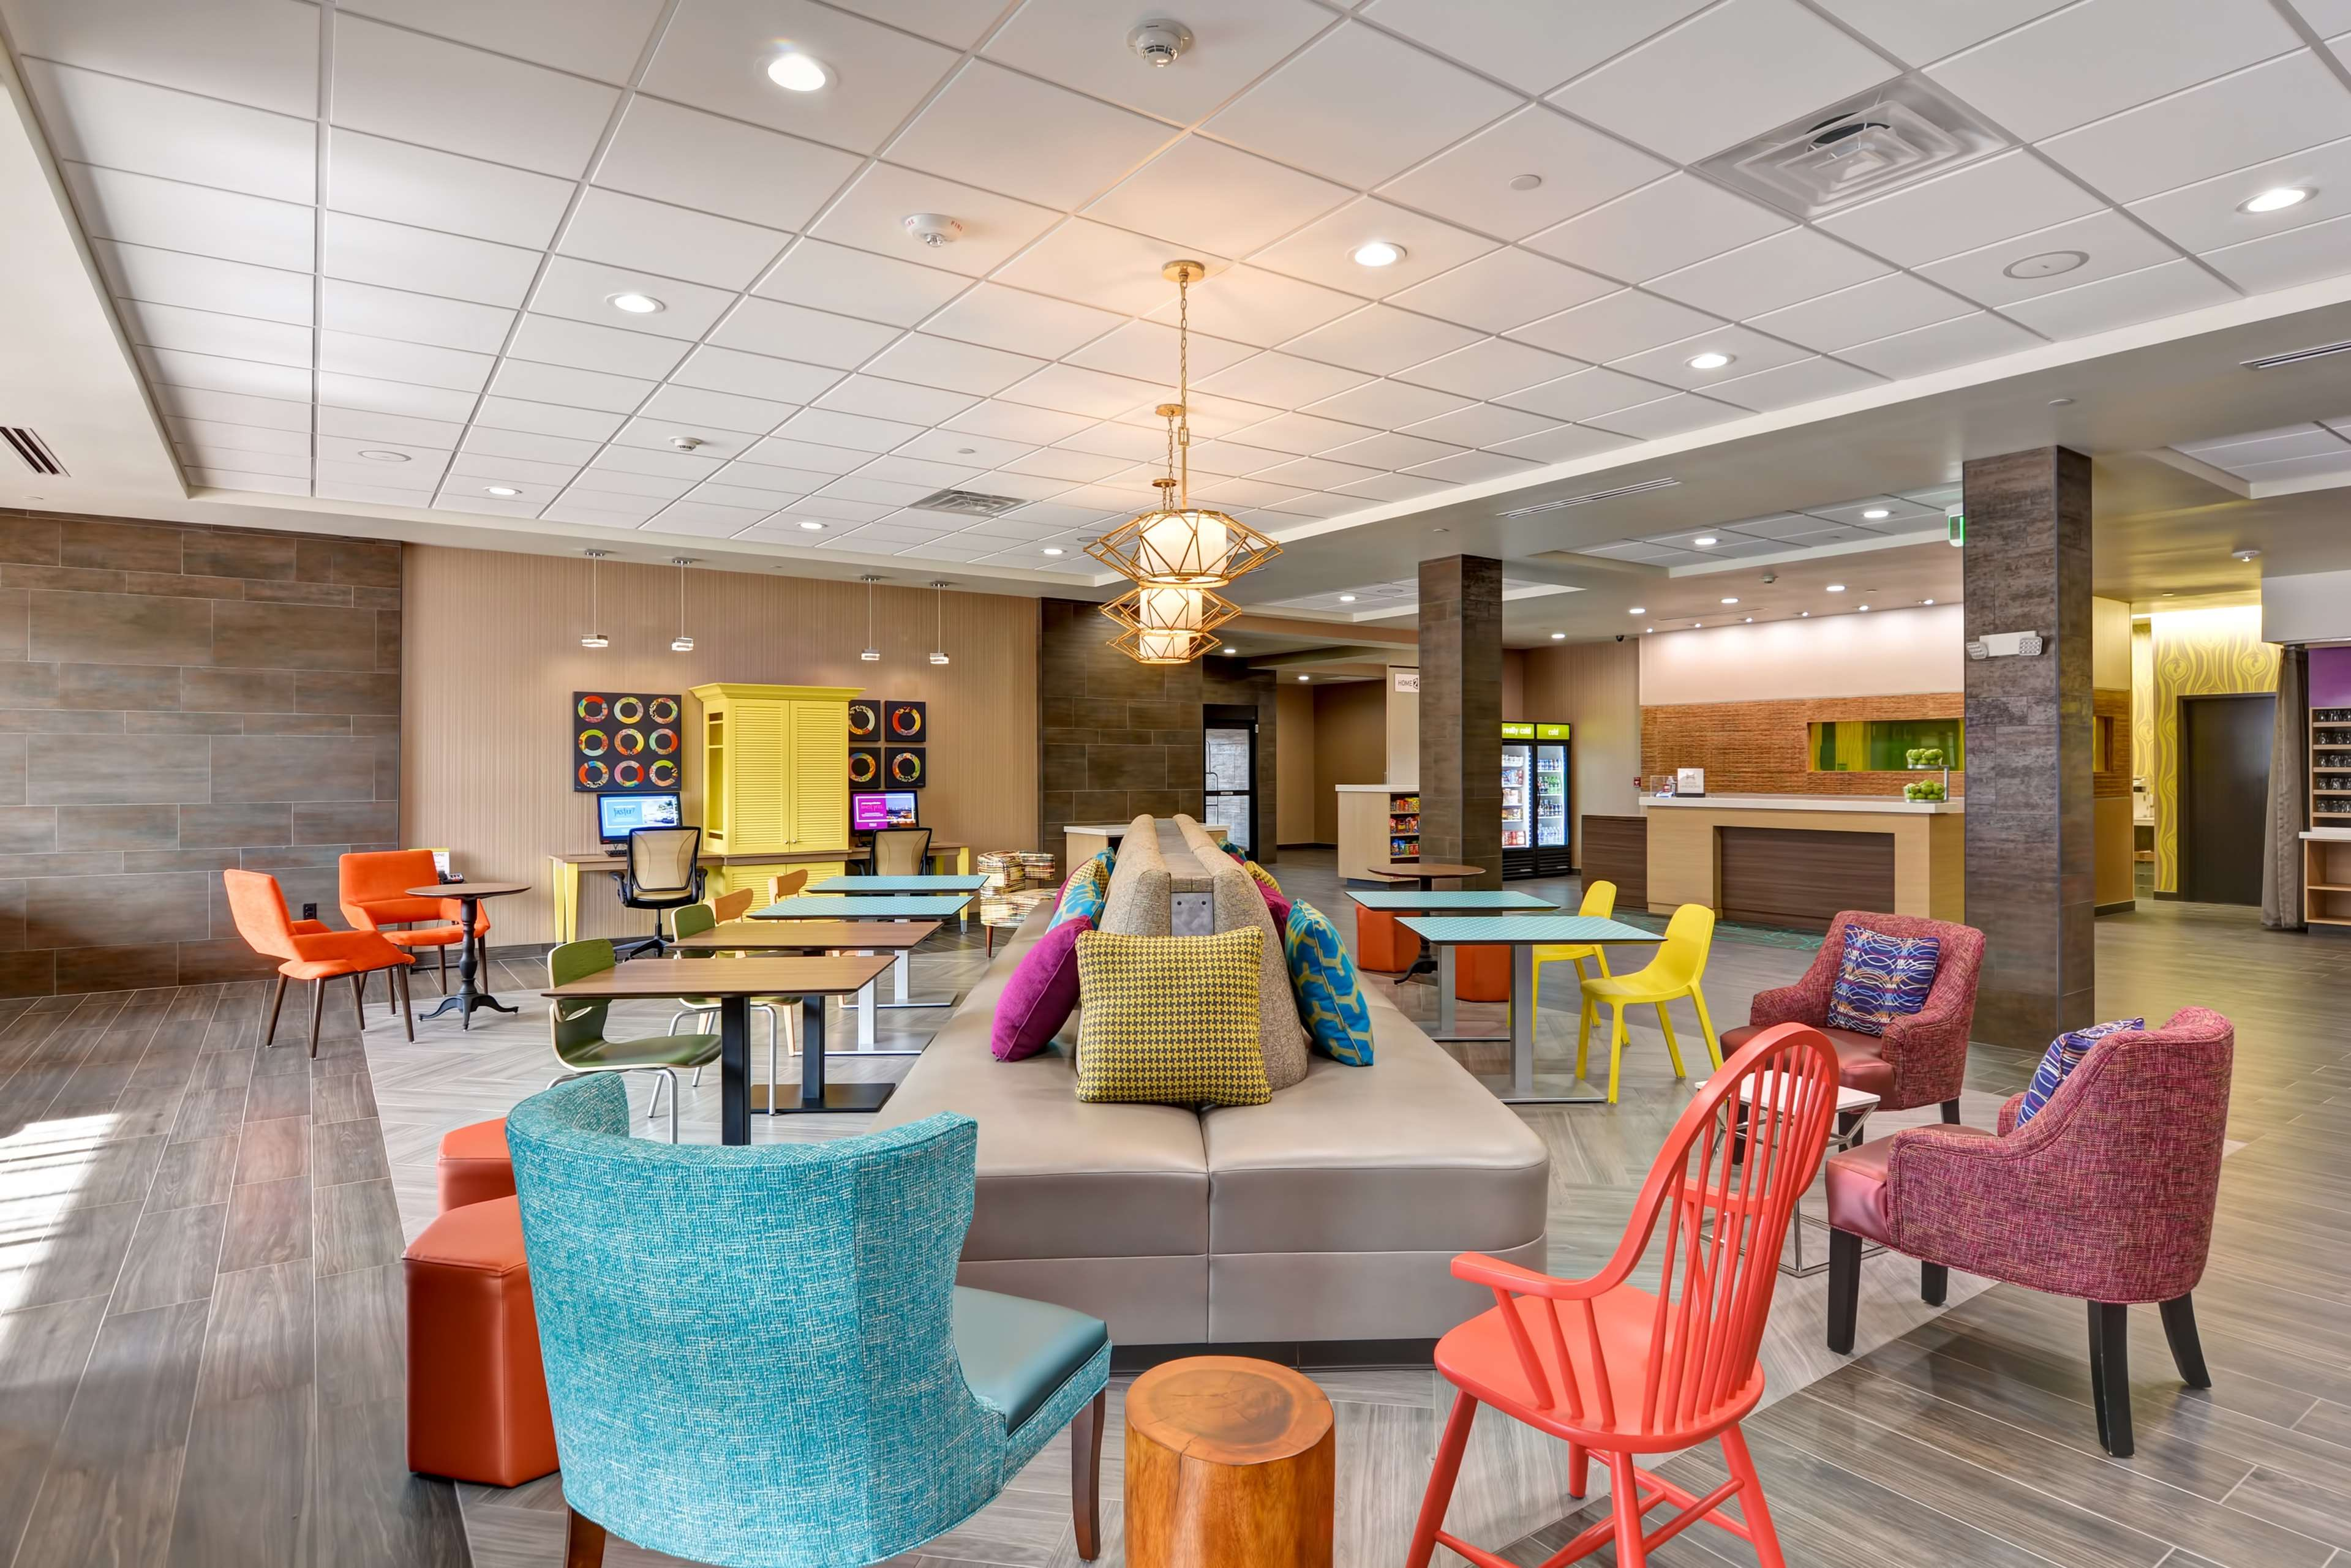 Home2 Suites by Hilton OKC Midwest City Tinker AFB image 6